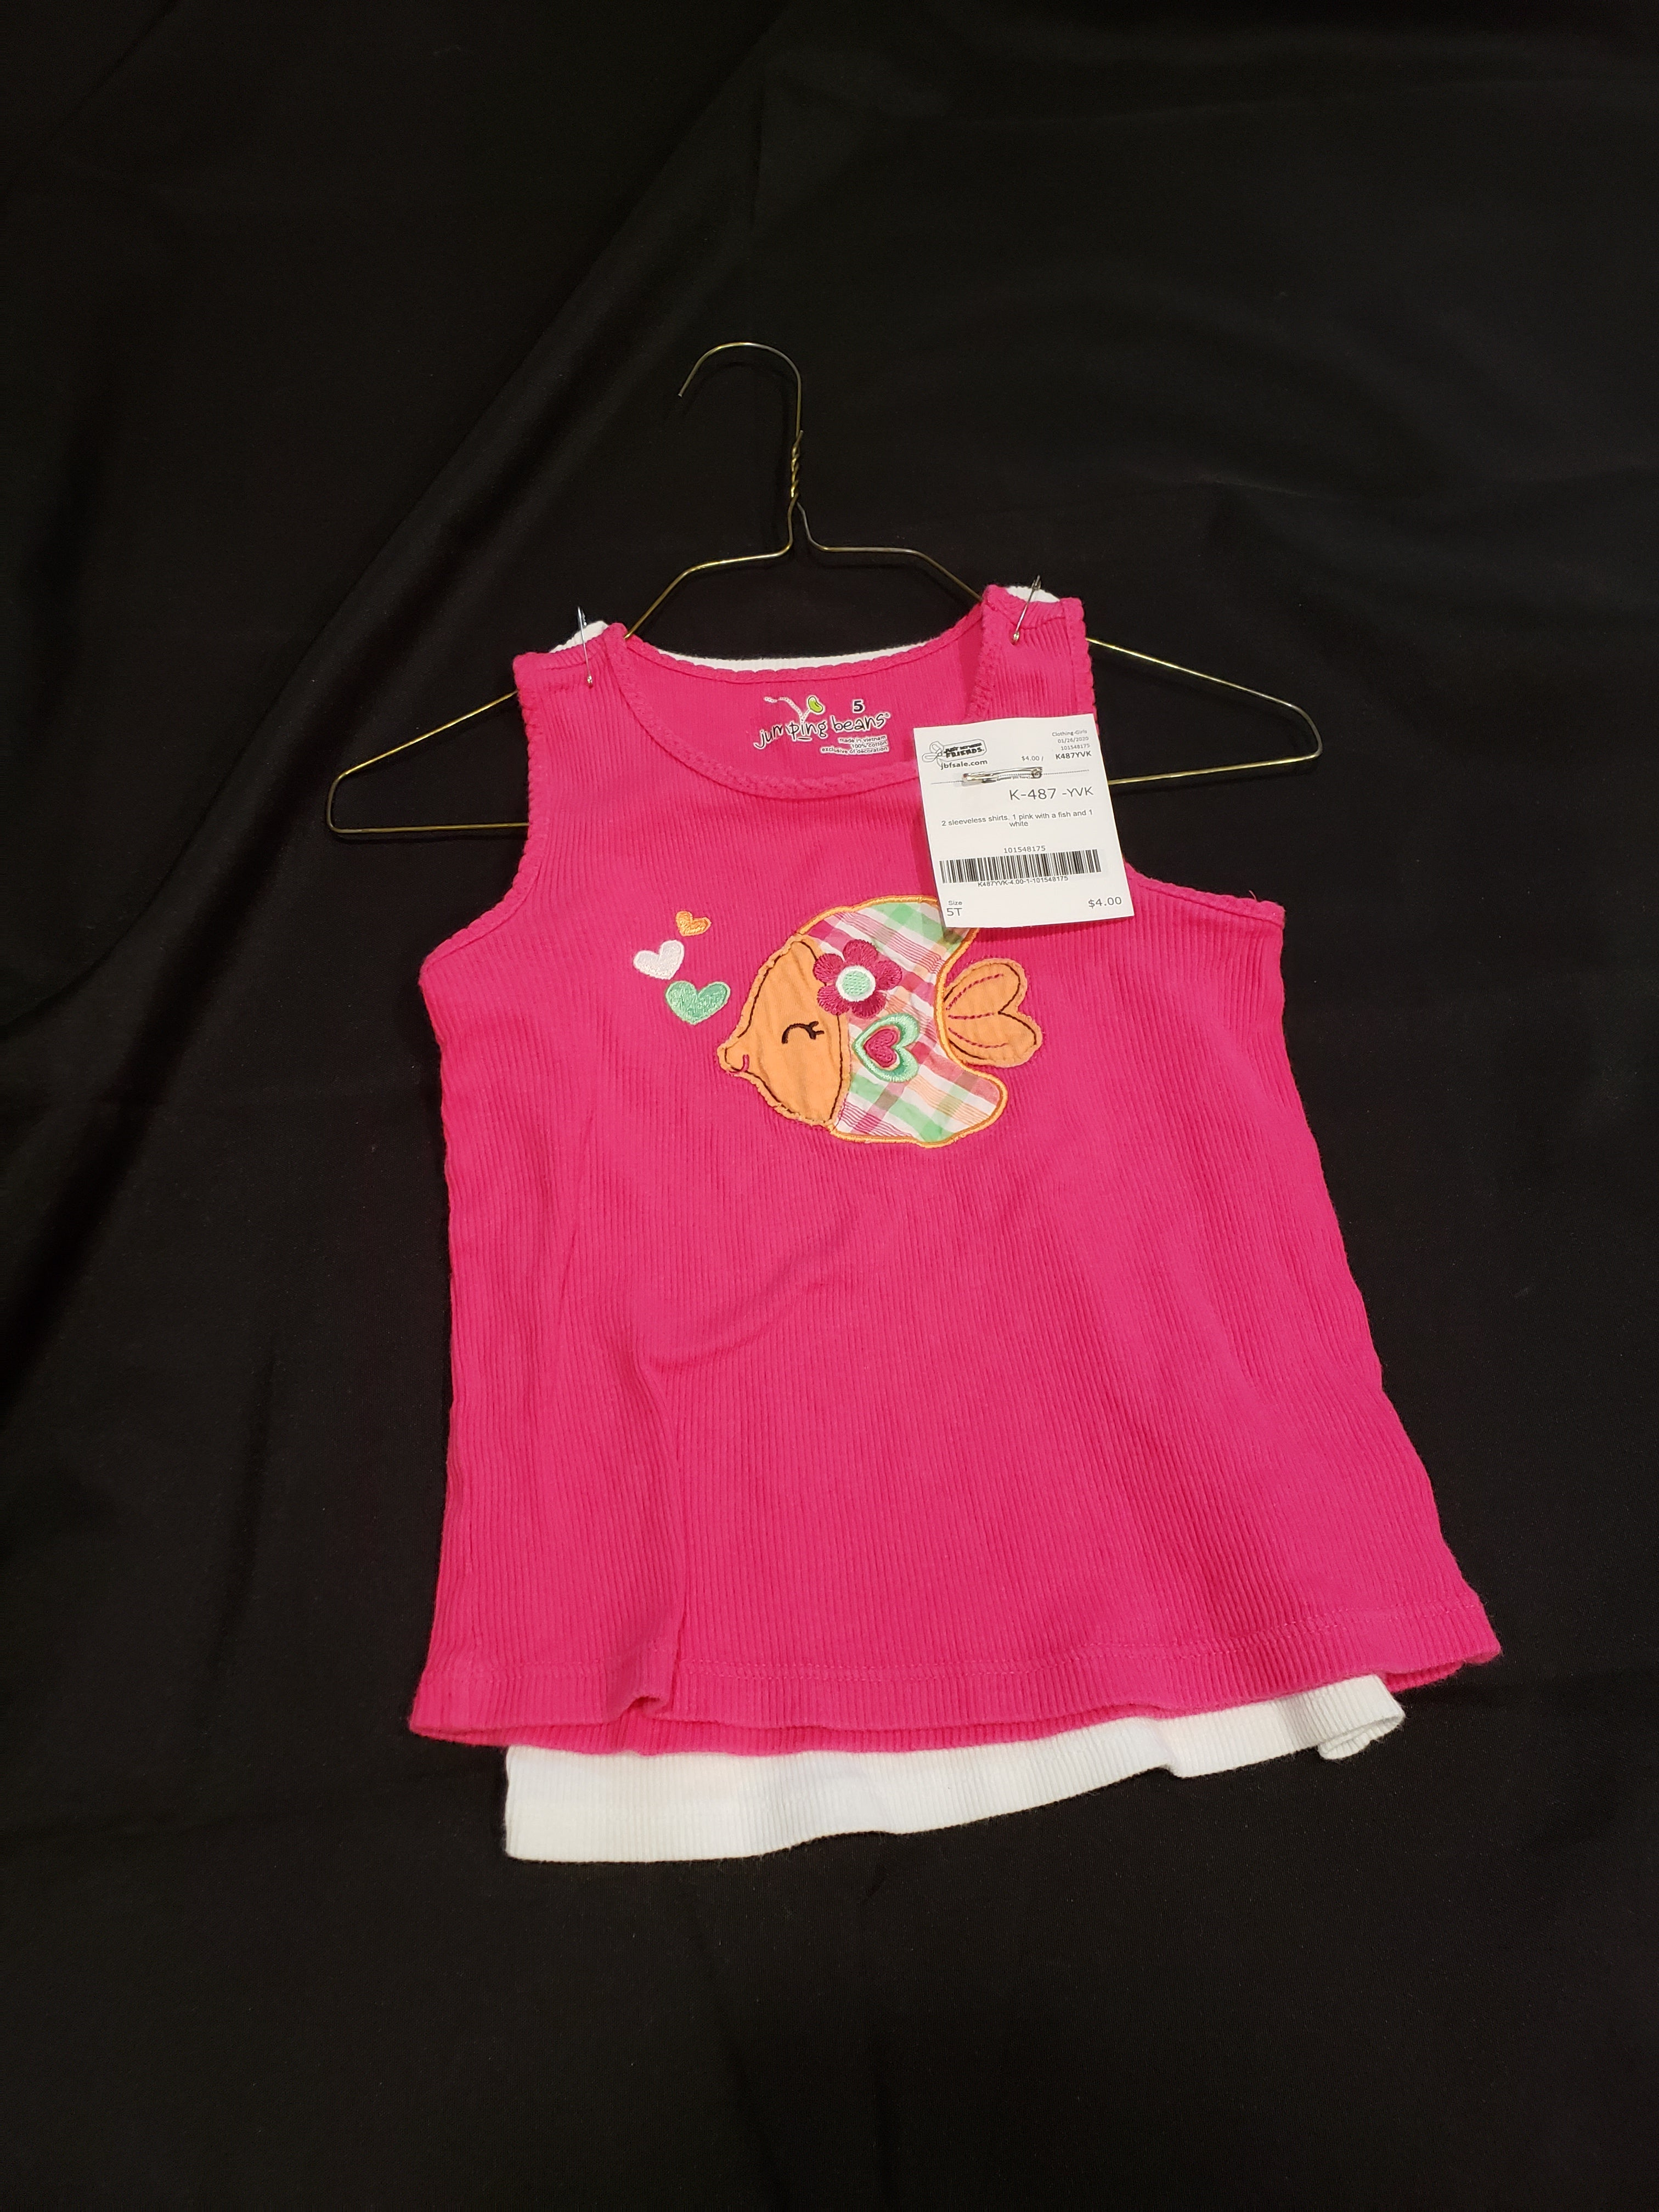 2 size 5T sleeveless shirts. 1 pink with a fish and 1 white